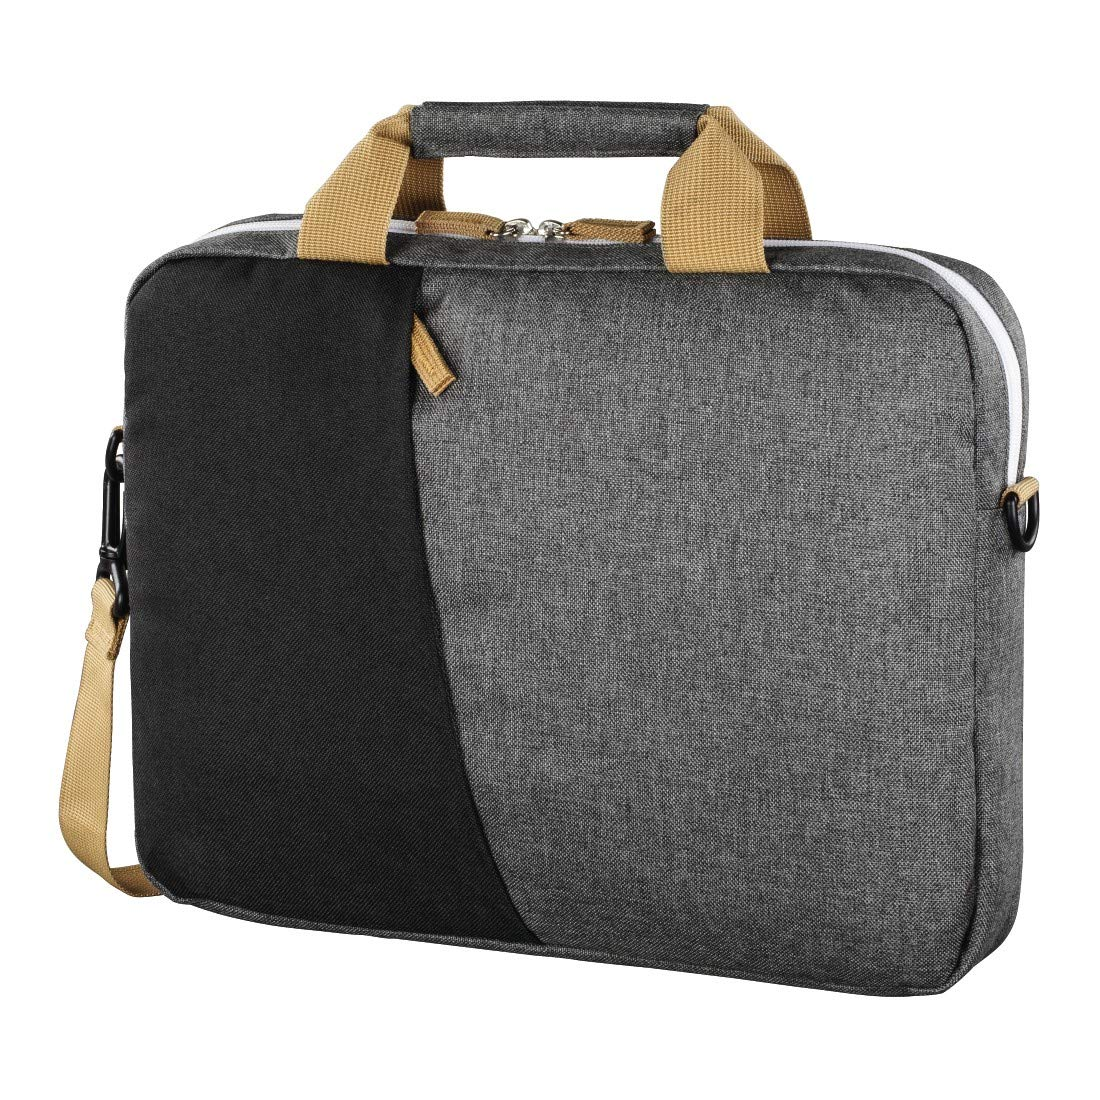 Hama'' Florence'' Notebook Bag up to 34 cm (13.3'') Black/Grey by Hama